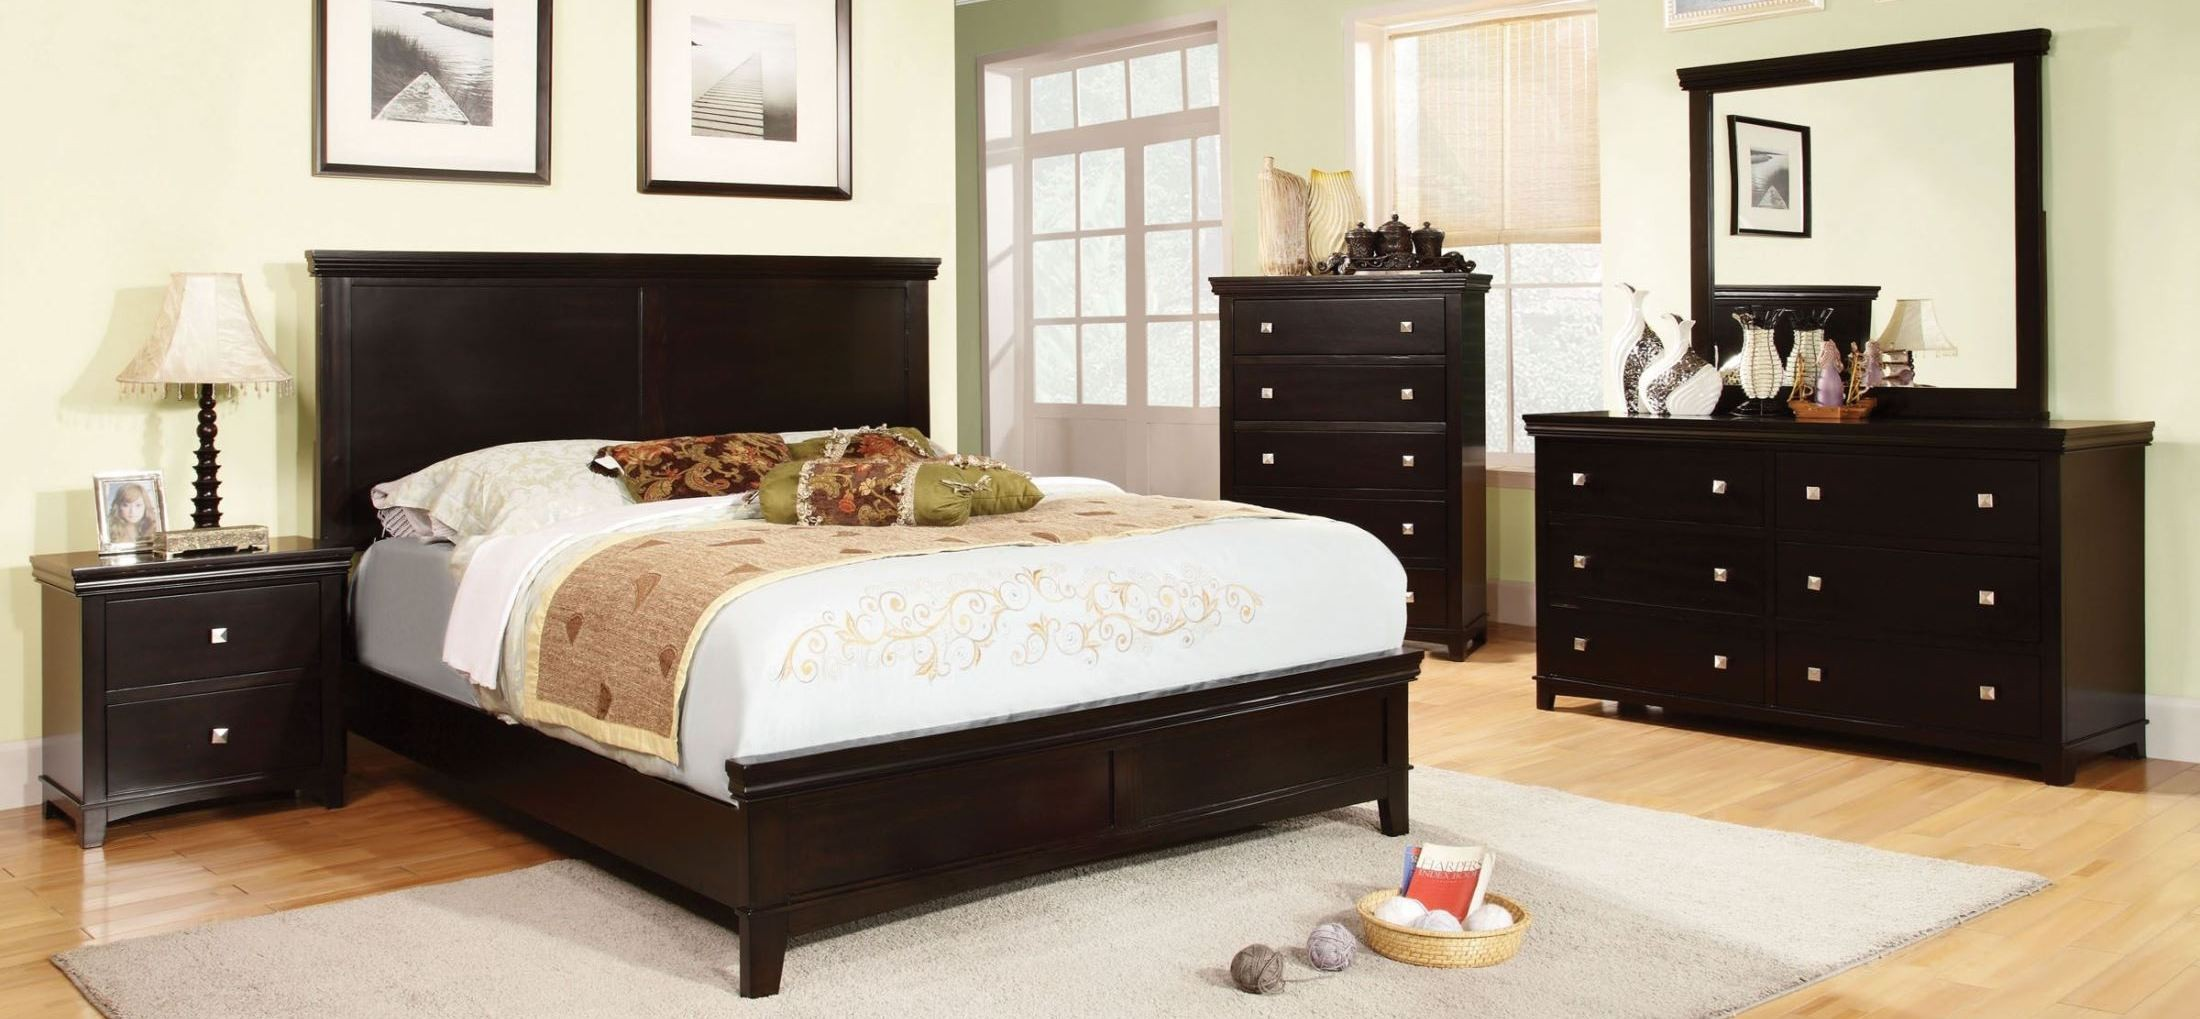 Spruce Espresso Panel Bedroom Set from Furniture of America CM7113EX Q BED